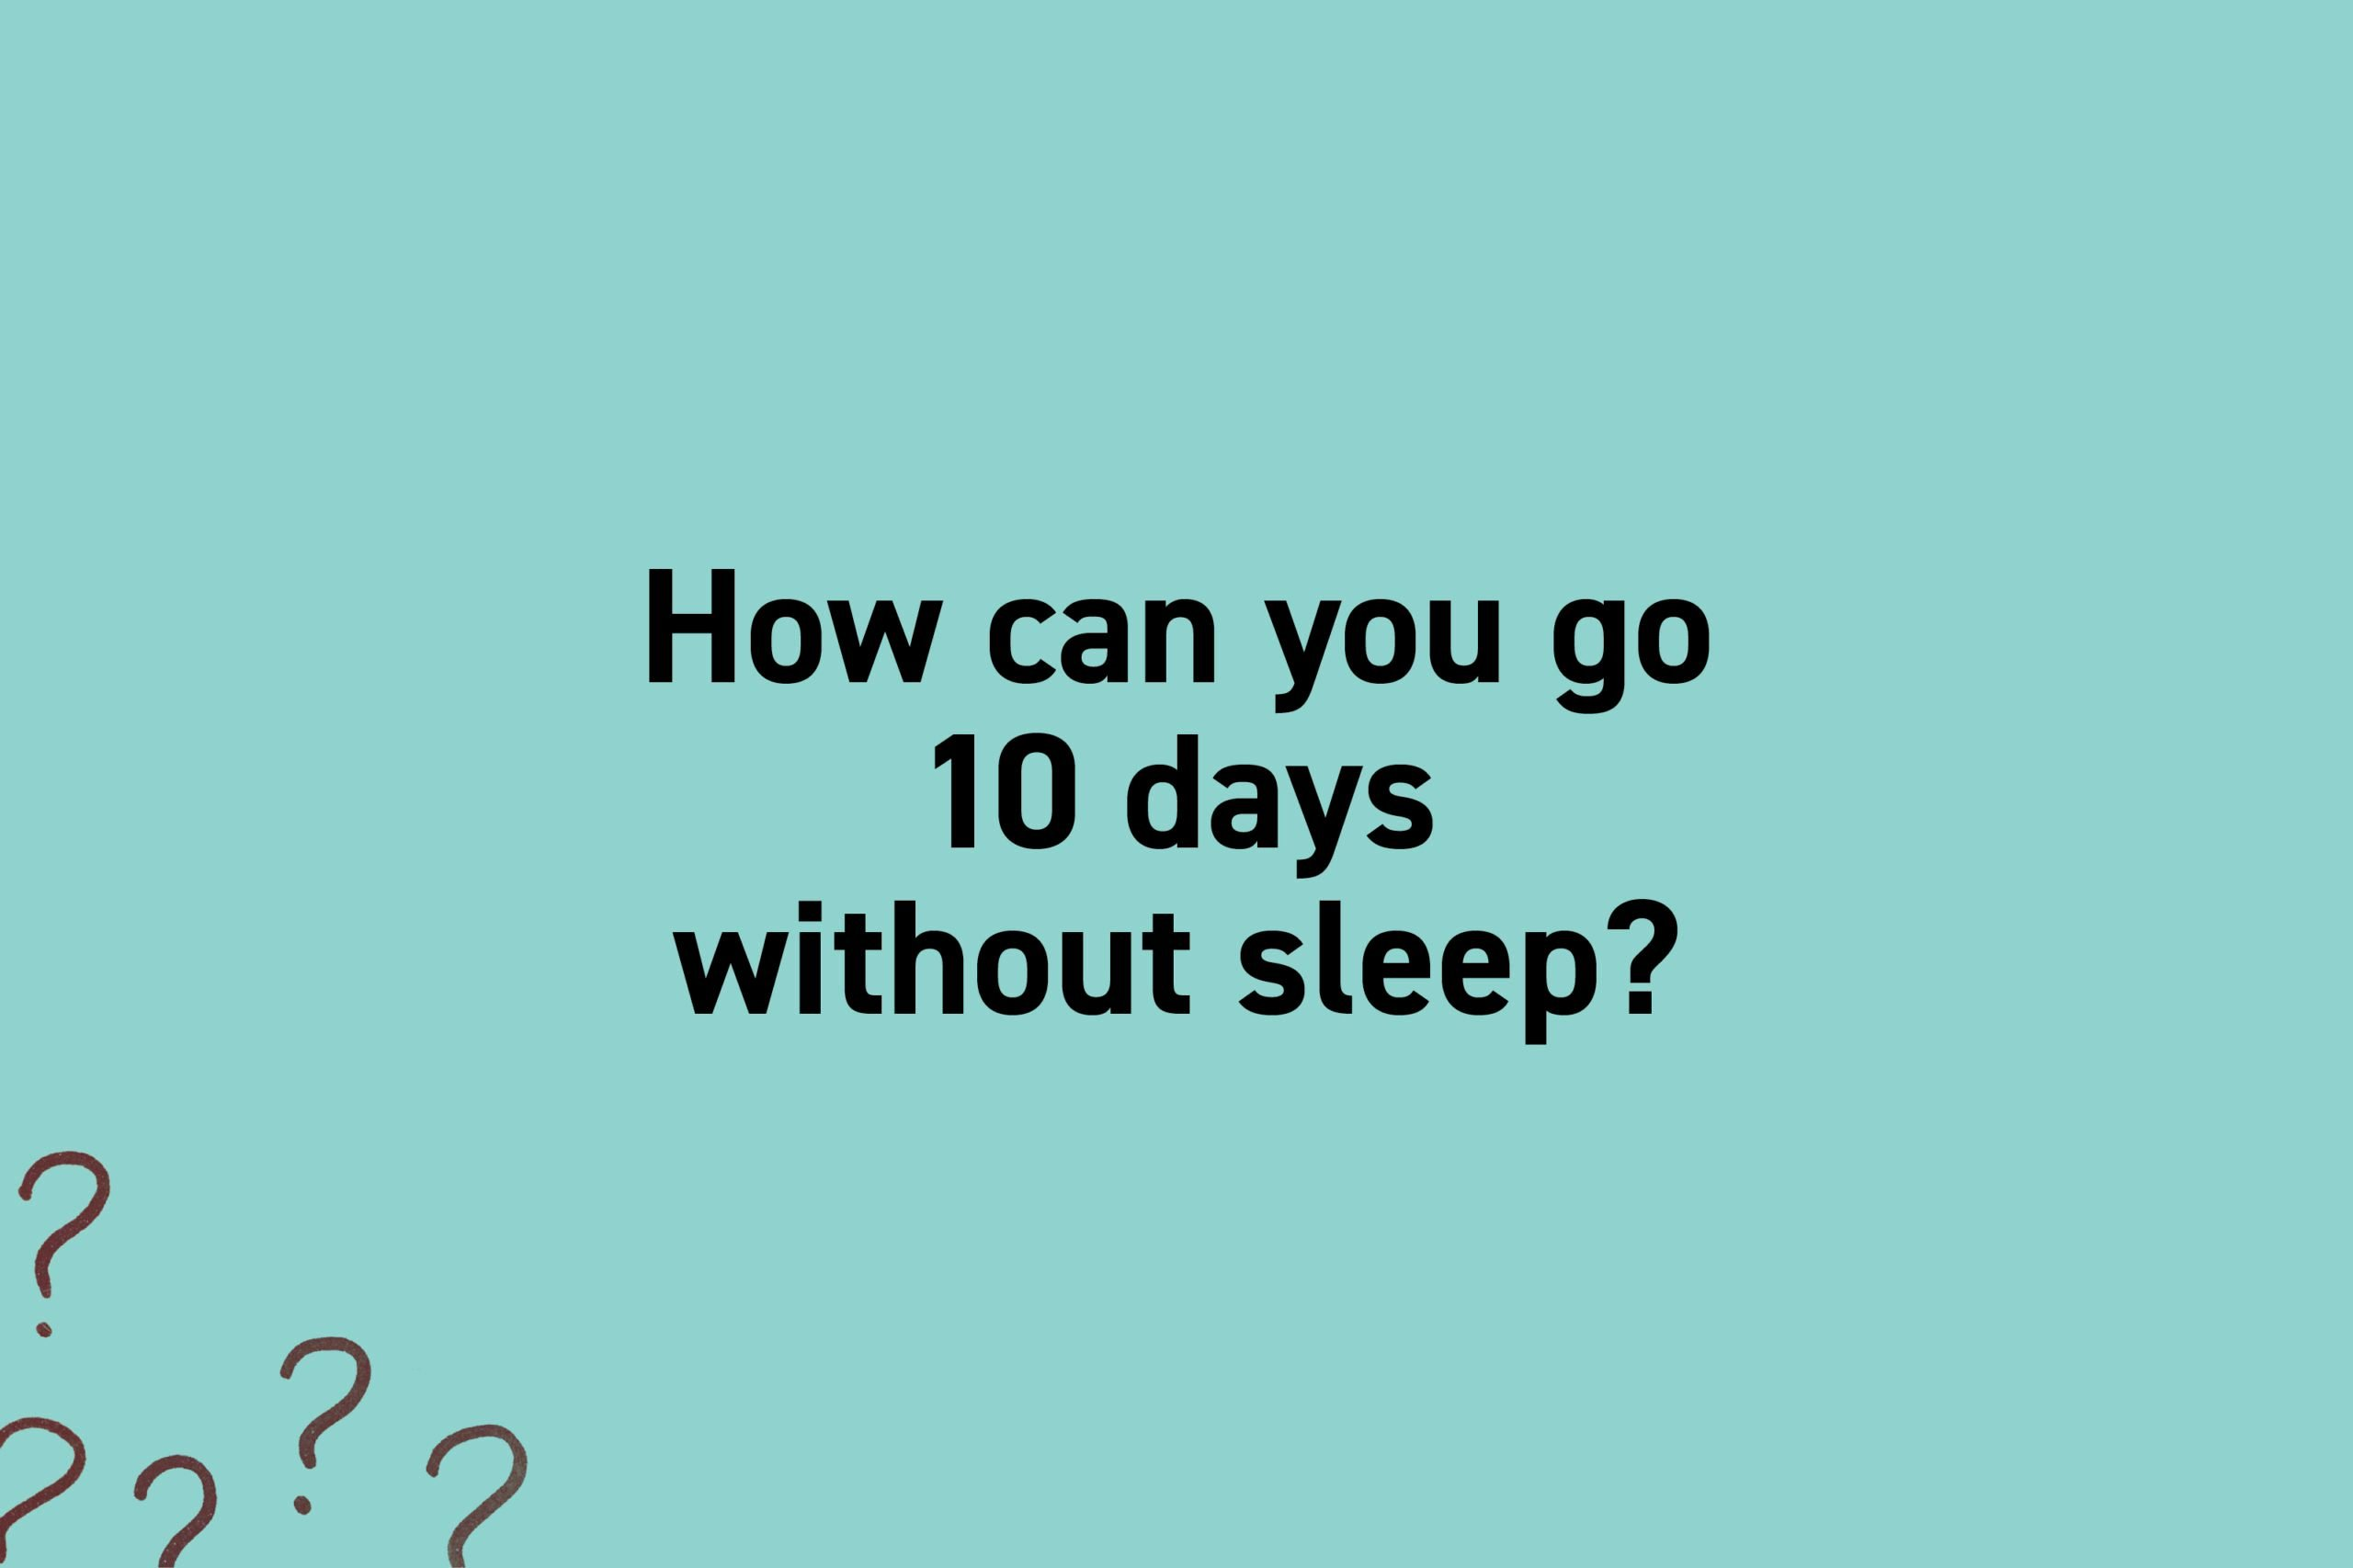 How can you go 10 days without sleep?